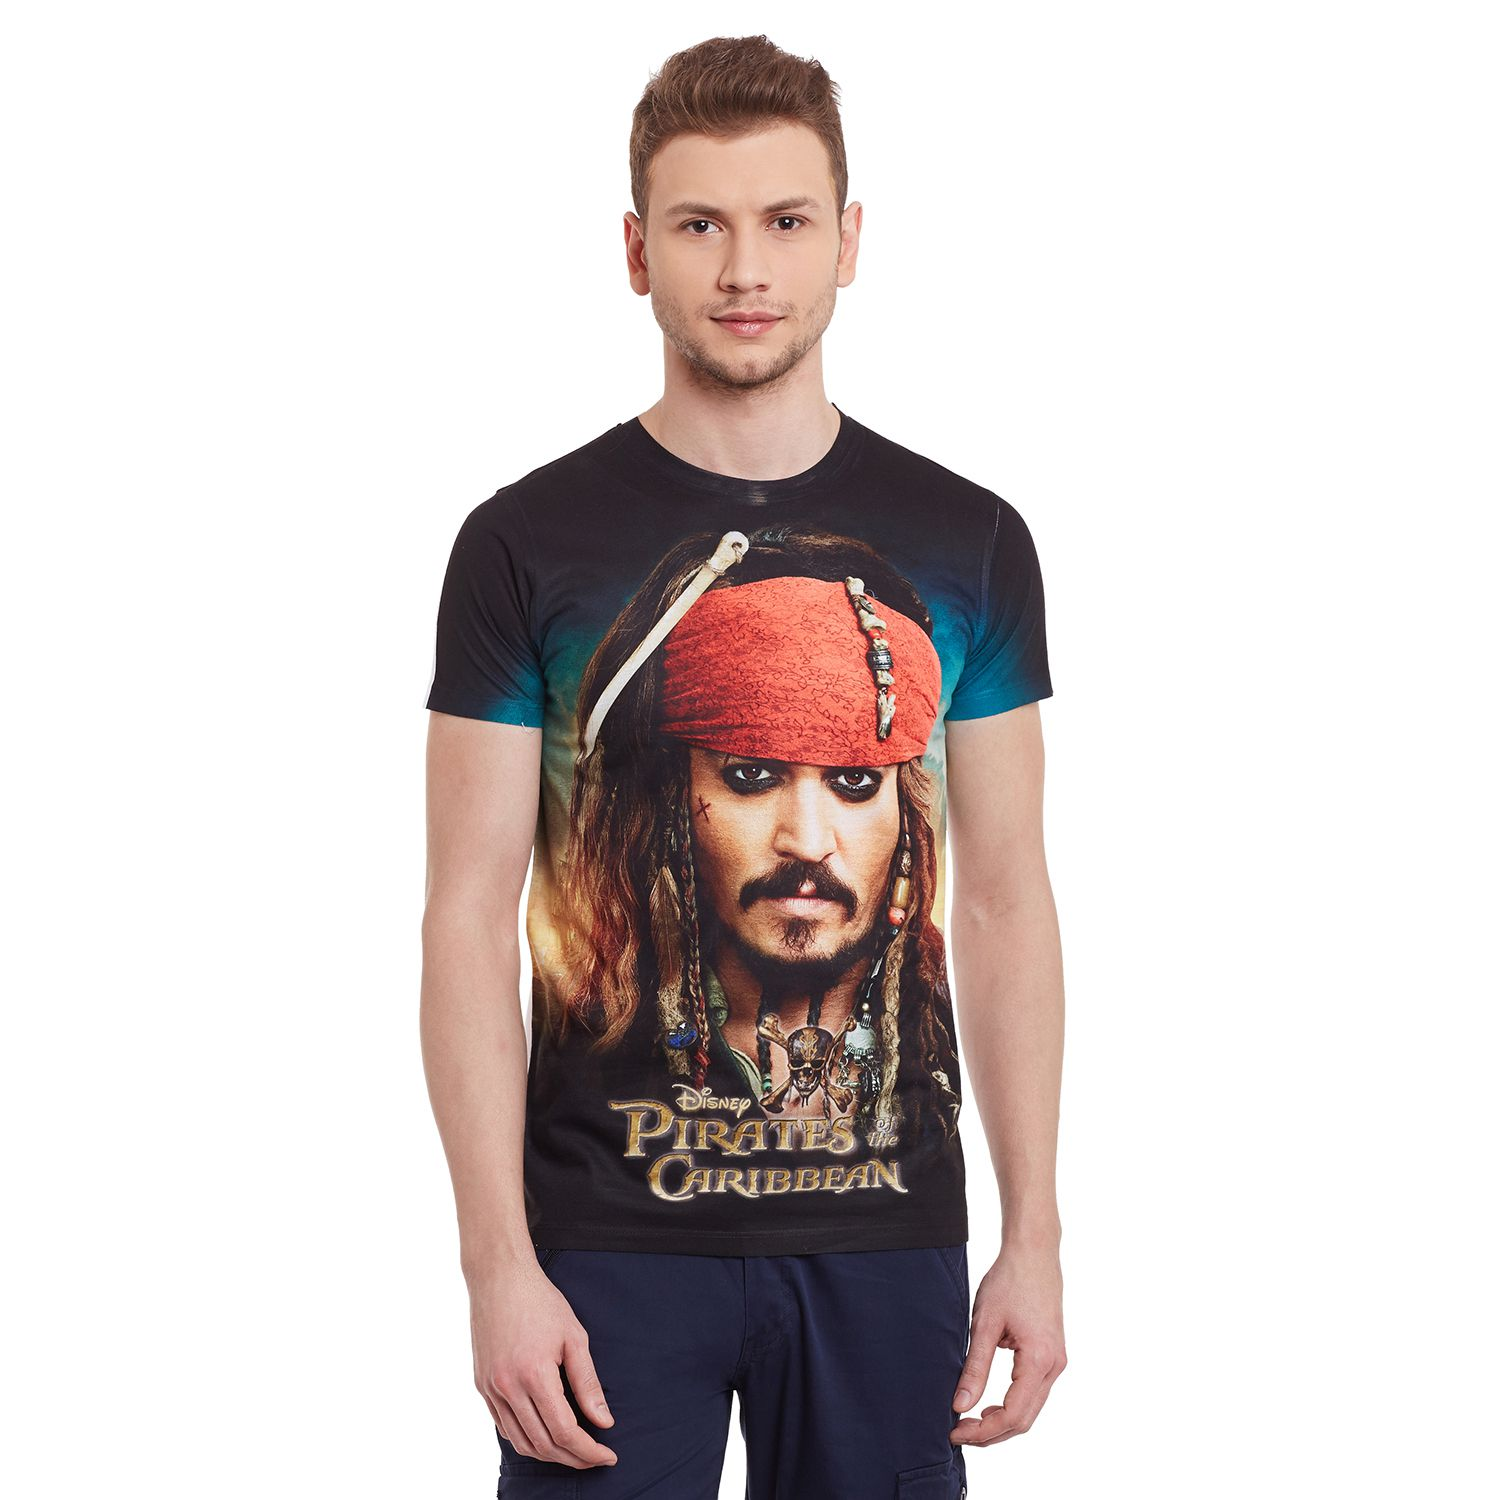 Pirates of the Caribbean Black Round T-Shirt Pack of 1